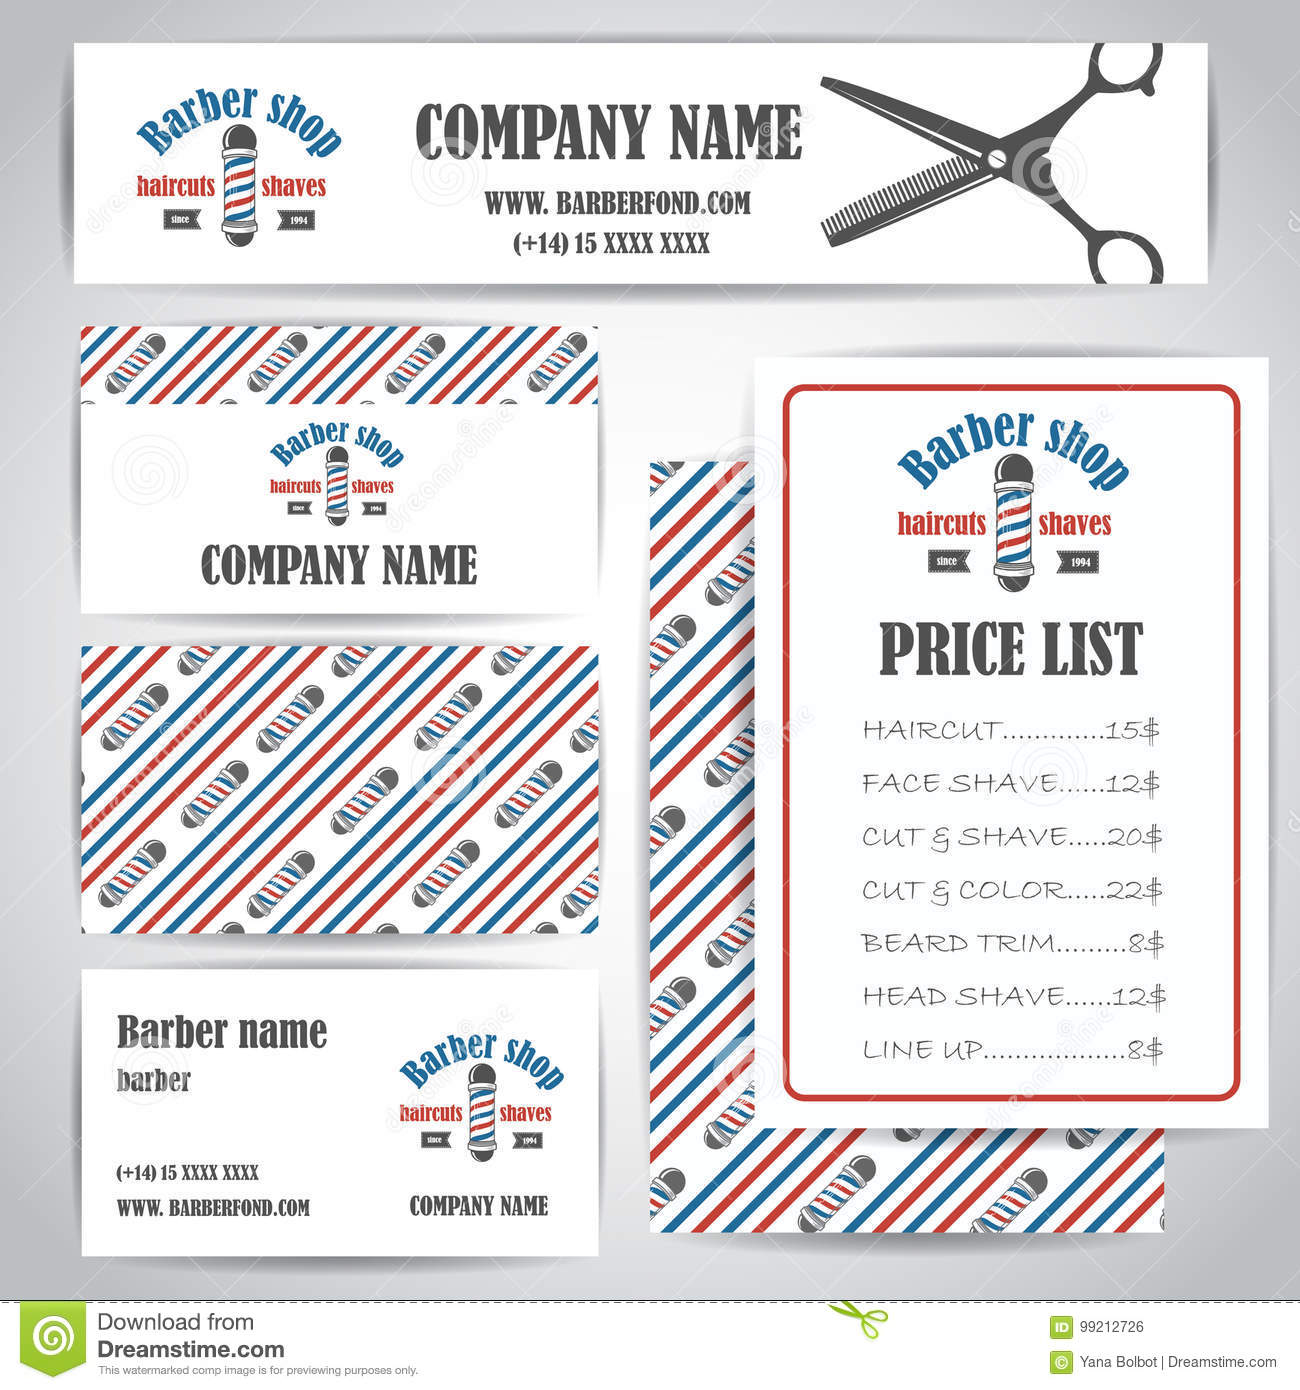 Hair salon barber shop vintage business cards and prices design download hair salon barber shop vintage business cards and prices design template set stock vector colourmoves